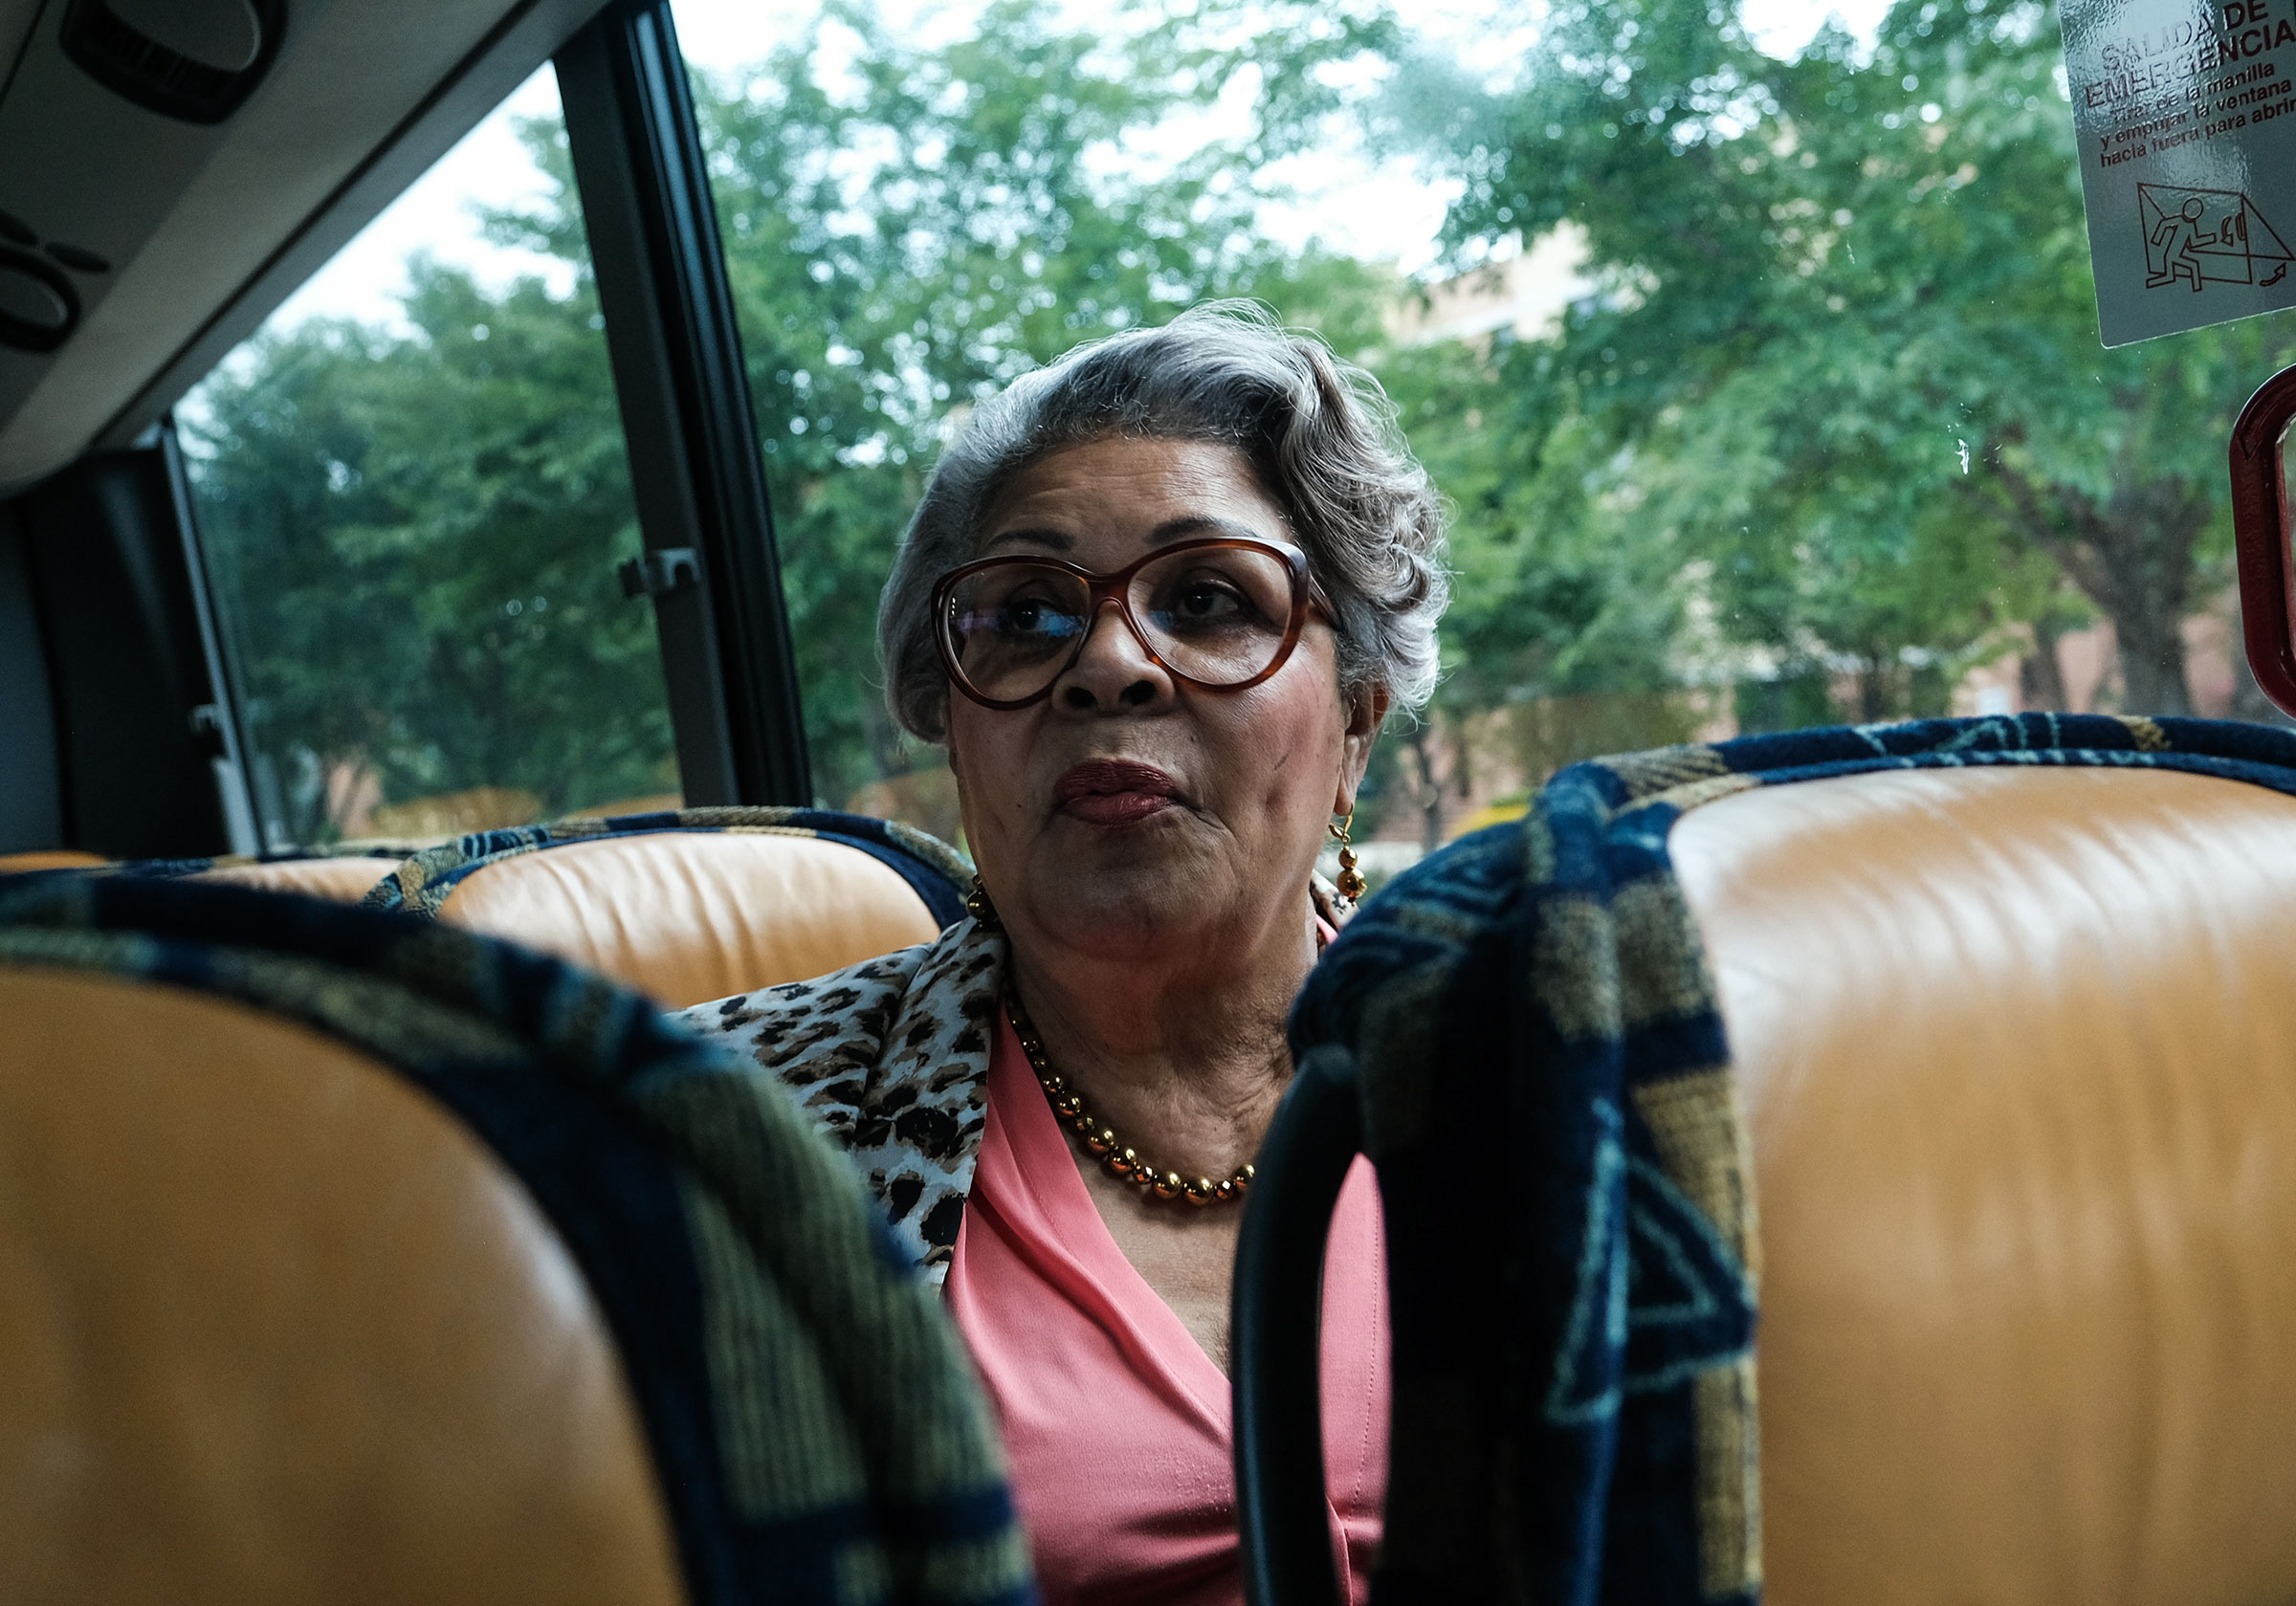 Rep. Thompson on a bus during an interview with a journalist in Washington, D.C., on July 16.